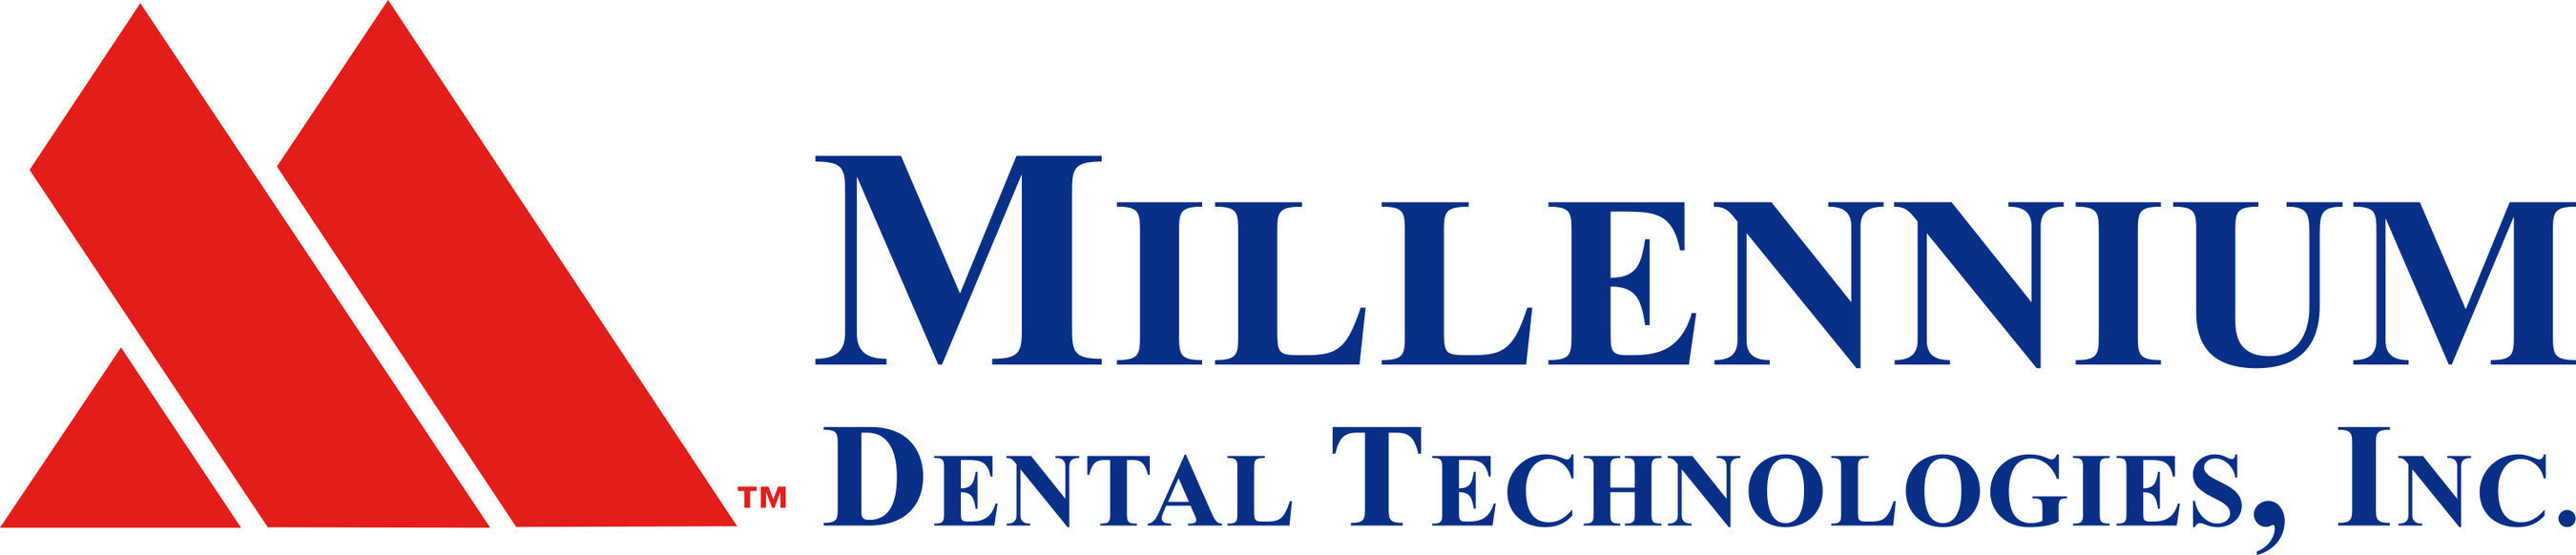 Millennium Dental Technologies, Inc. manufacturer of the PerioLase MVP-7 for the LANAP protocol gum disease treatment, FDA cleared for True Regeneration